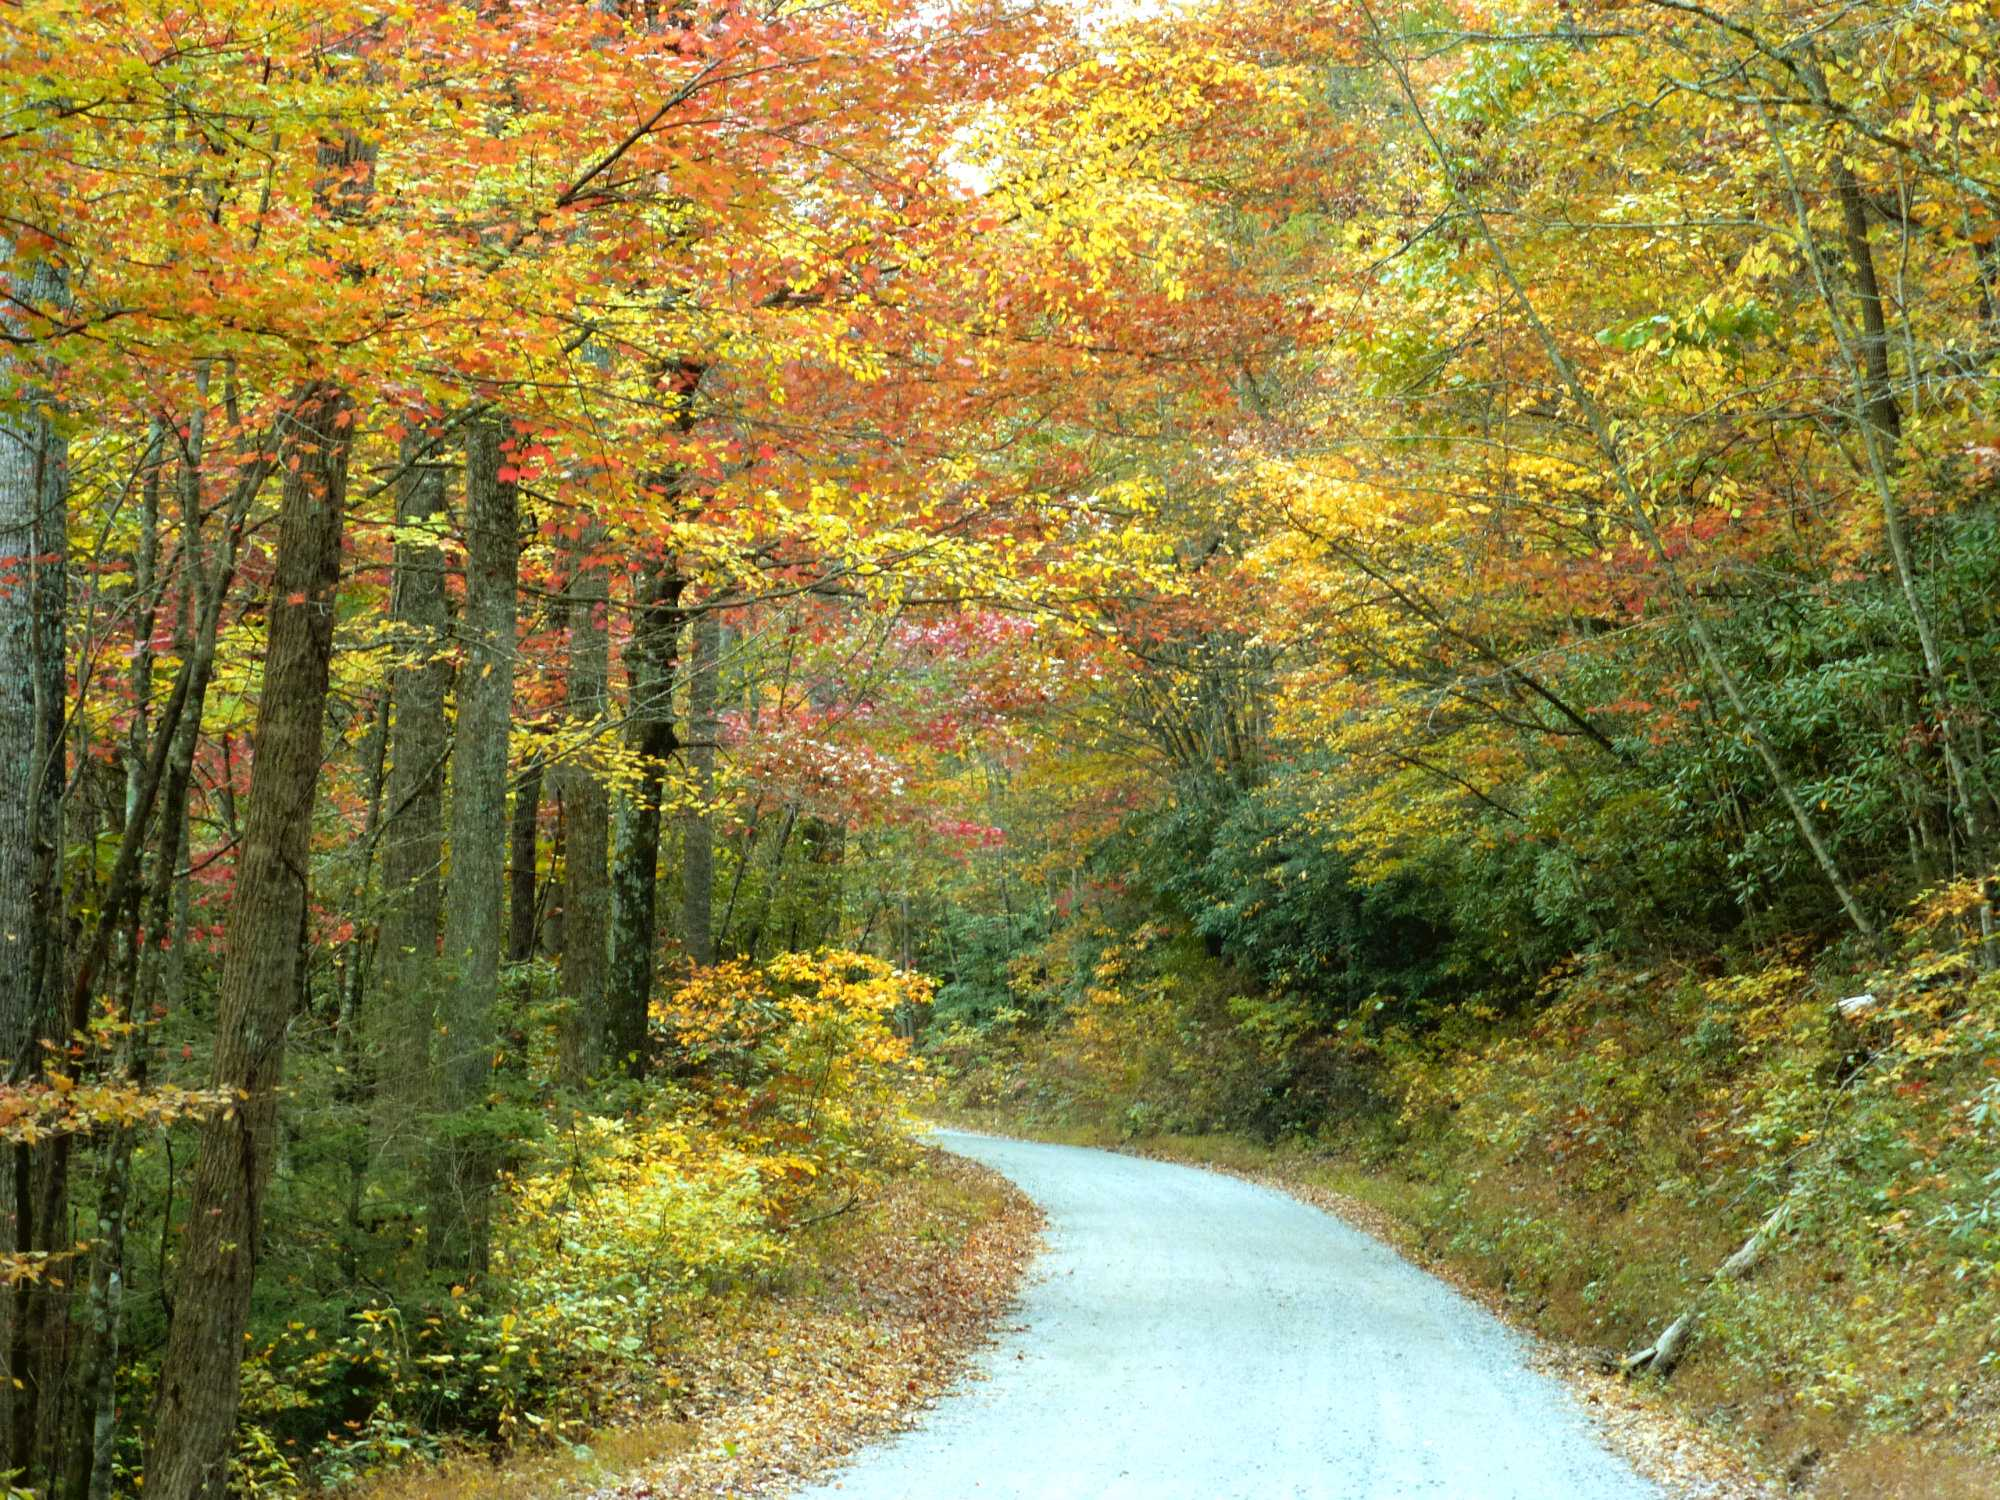 Narrow dirt road winding through a forest in full fall color